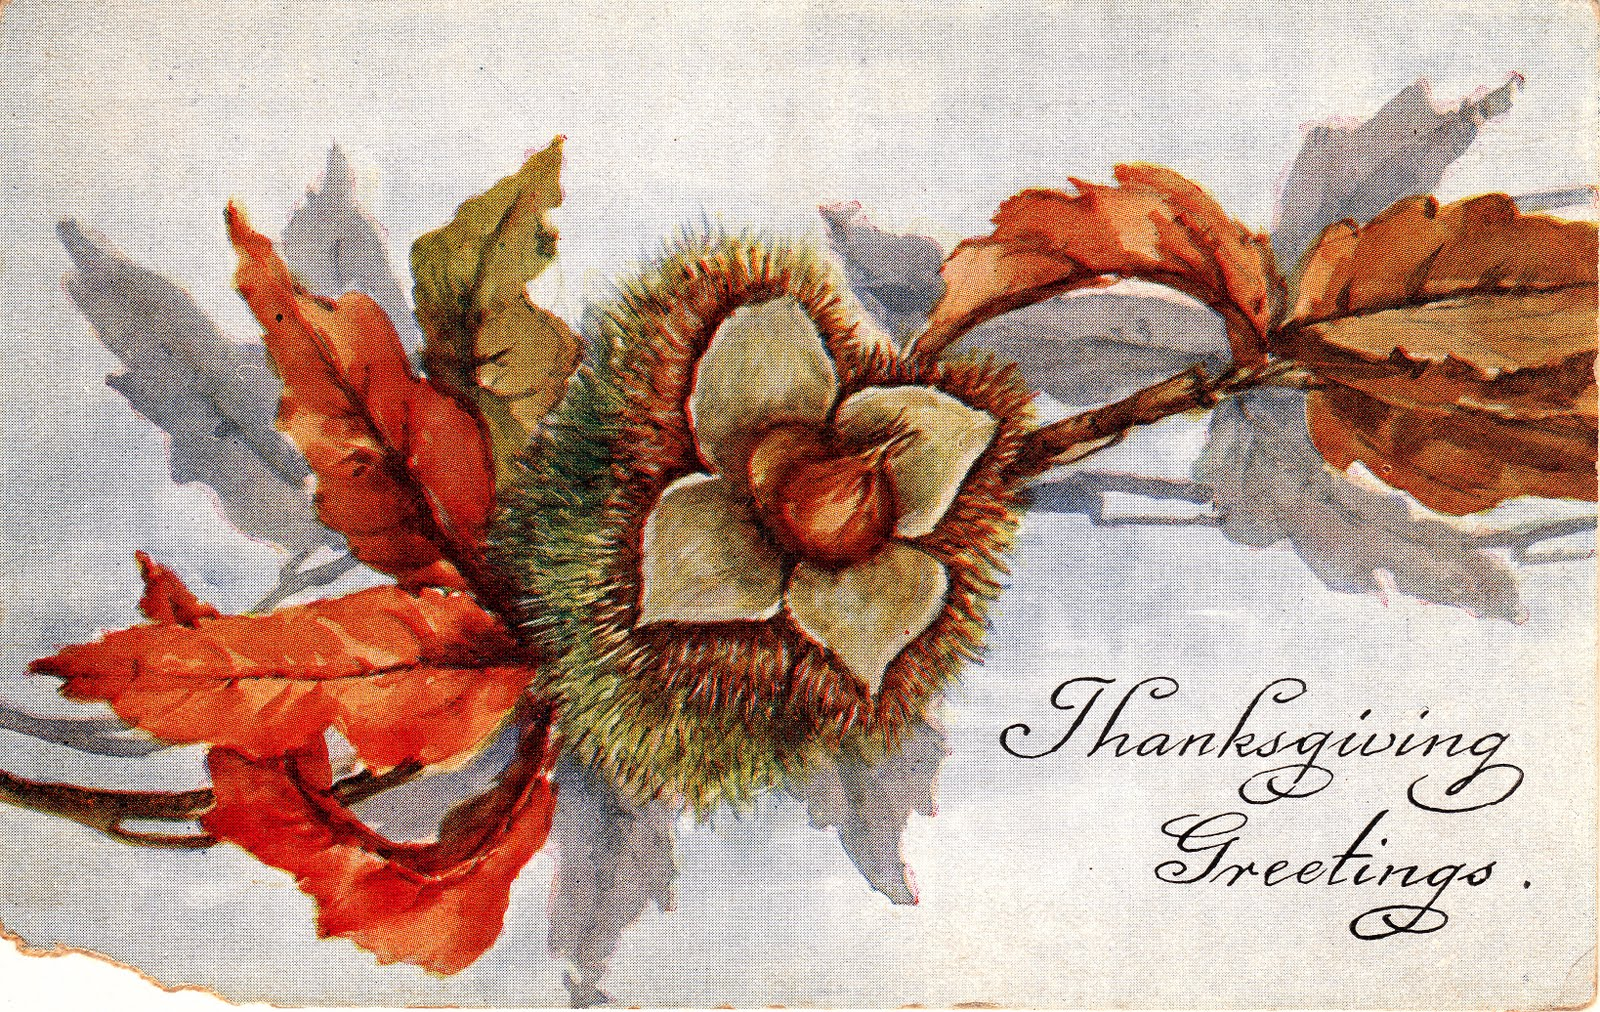 My Ancestors And Me Thanksgiving Greetings